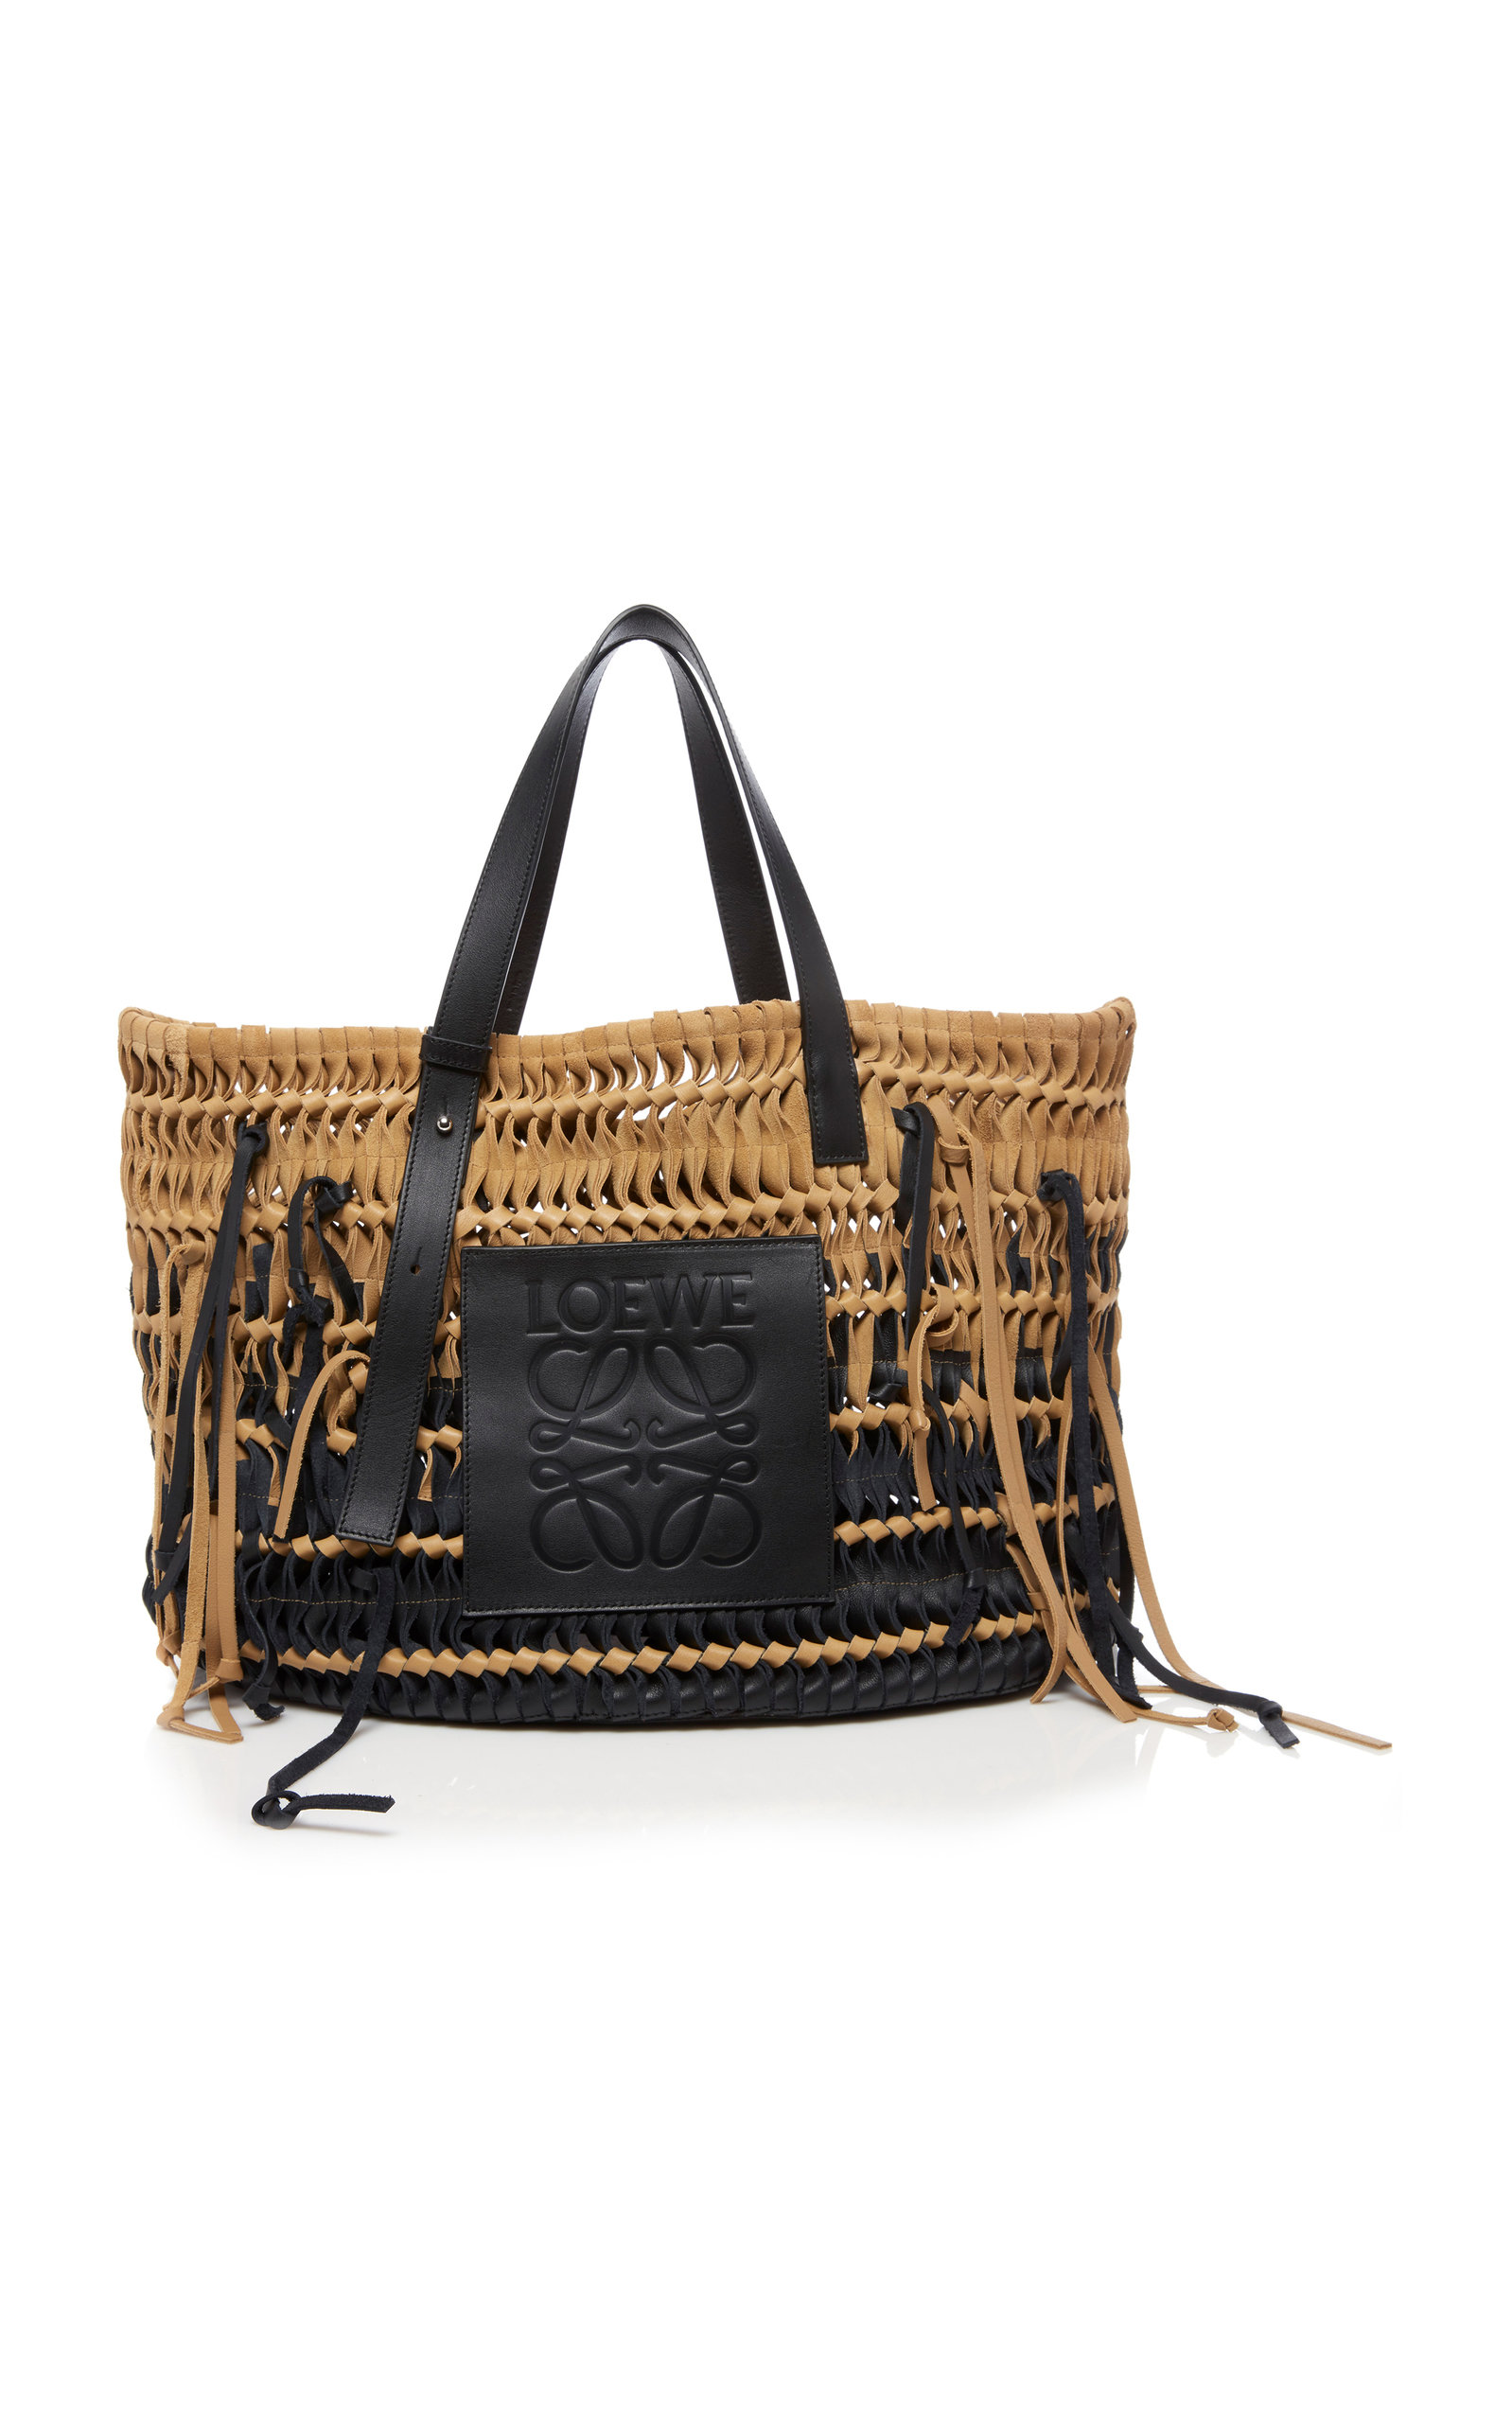 af6d71ddb Woven Suede and Leather Tote Bag by Loewe   Moda Operandi